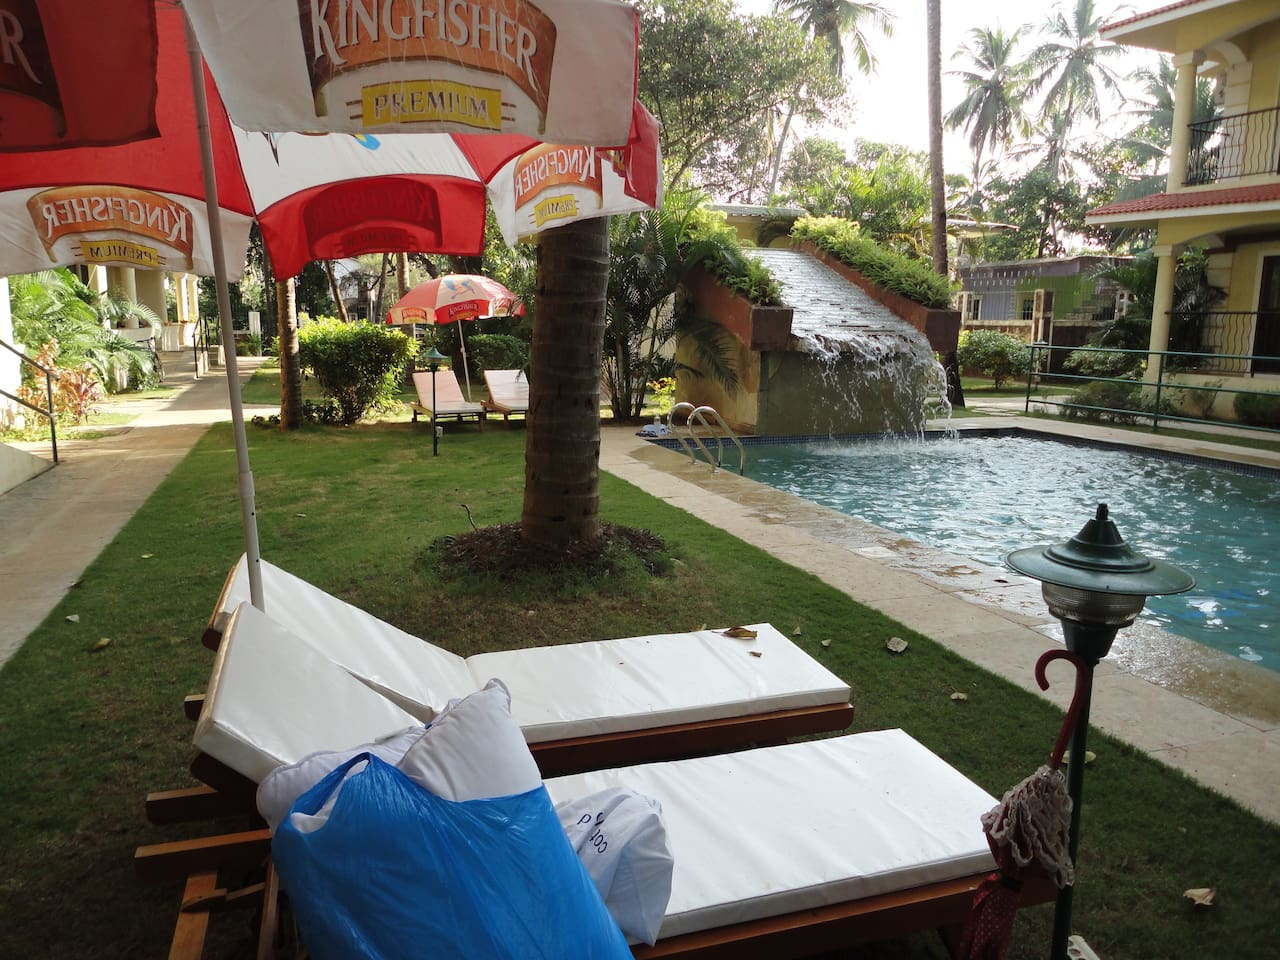 Swimming pool with deck chairs and garden and an overhead tree with hanging roots